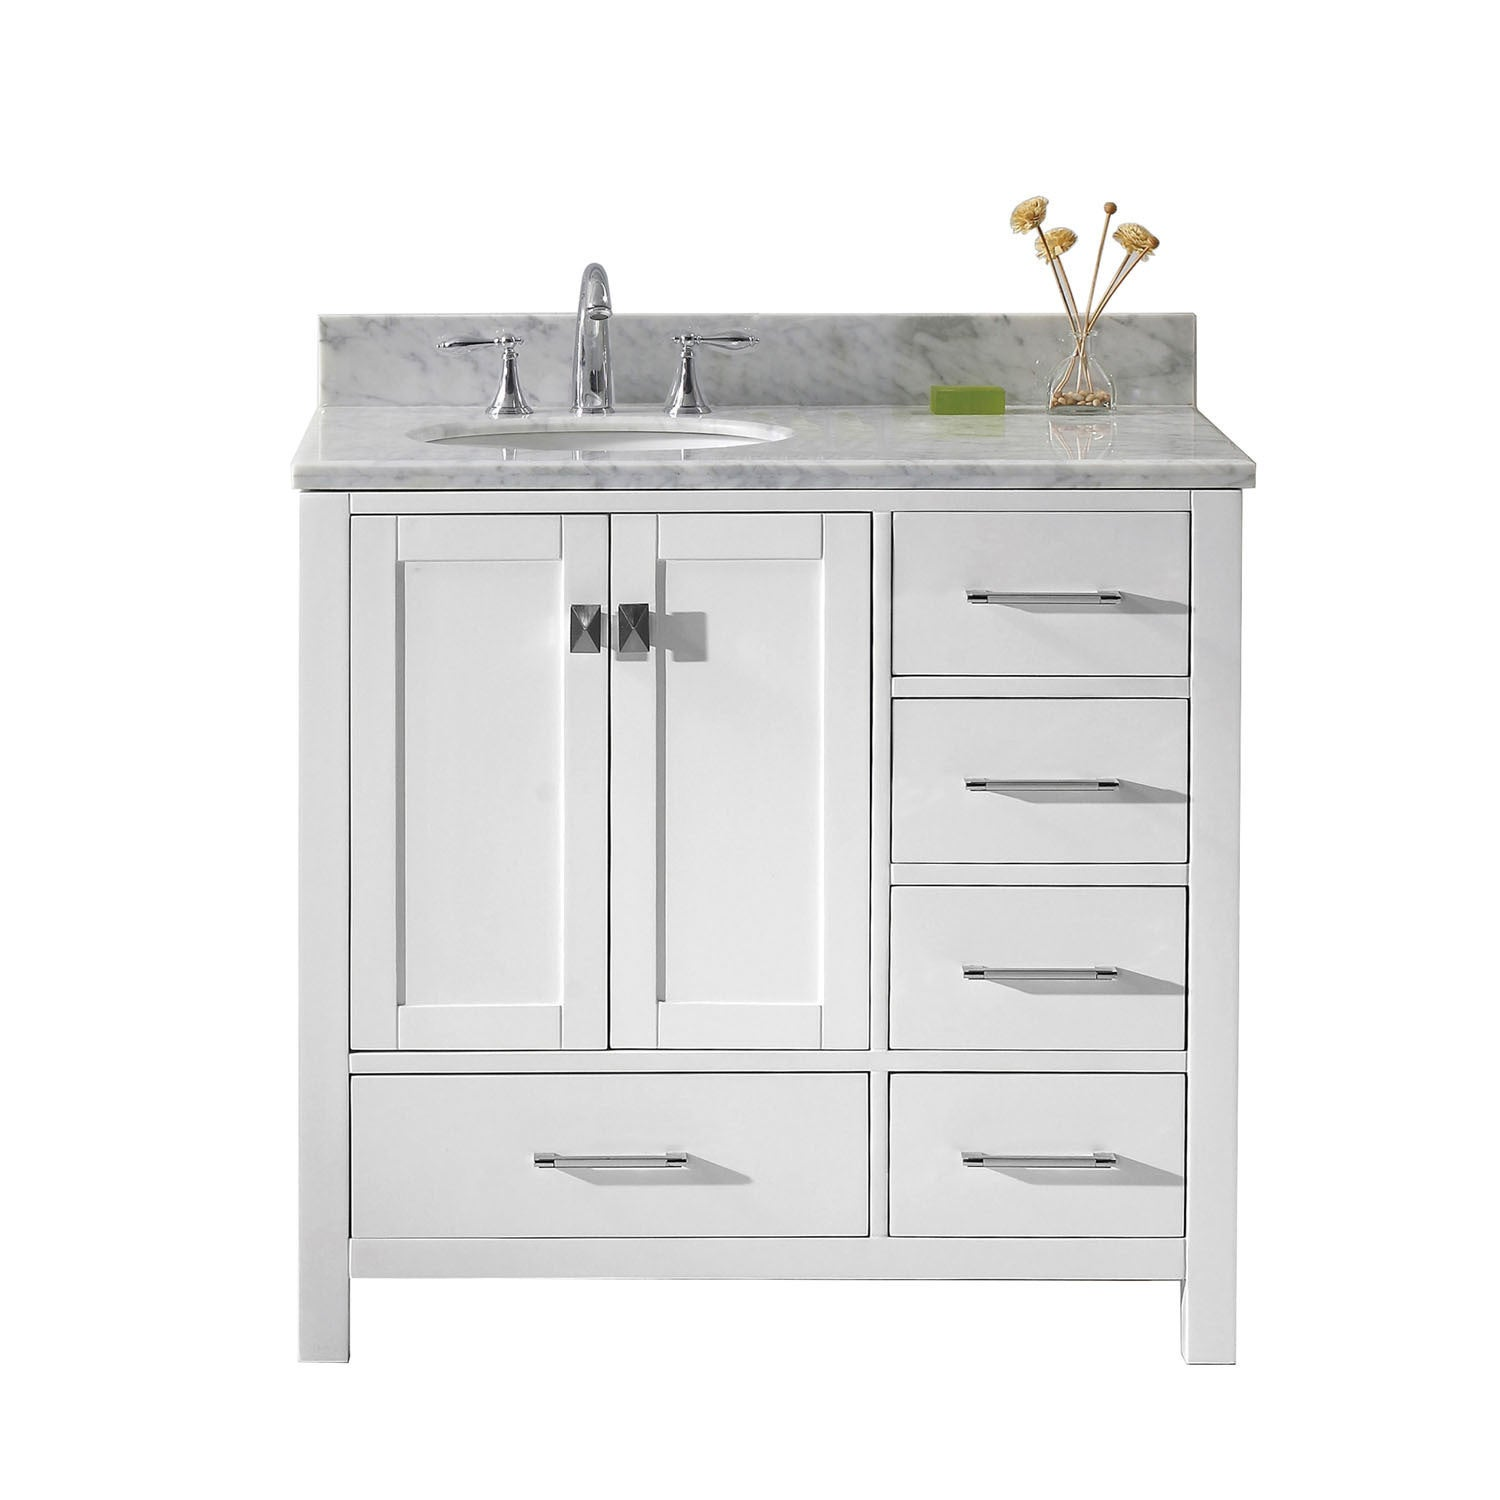 Caroline Avenue 36 Inch White Marble Single Bathroom Vanity No